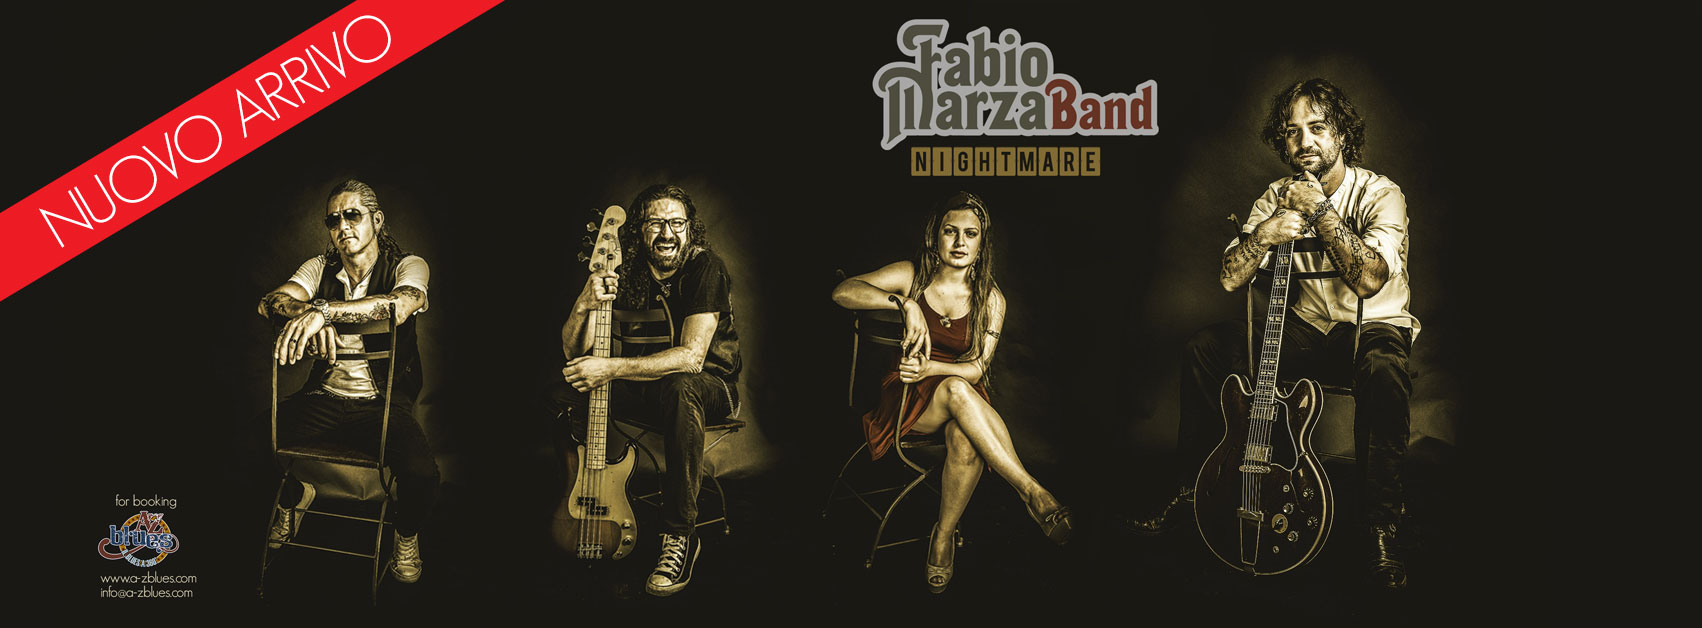 A-Z Blues, Fabio Marza Band, Nightmare, grafica Antonio Boschi, WIT Grafica & Comunicazione